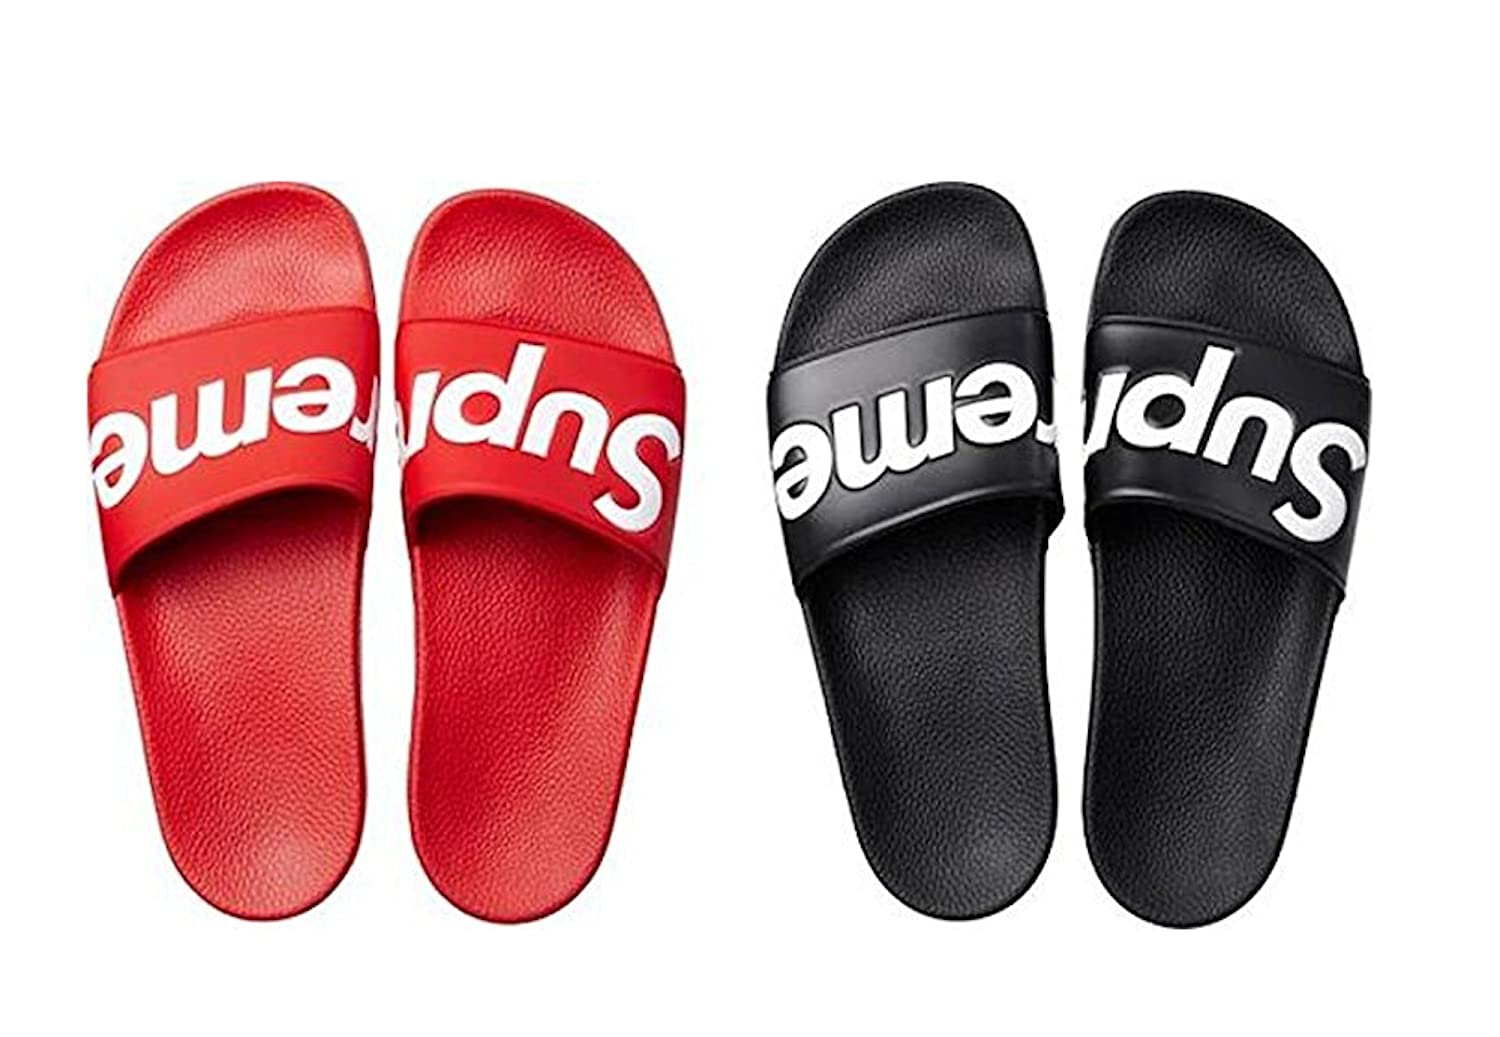 Supreme Flip Flop Sandals | Extremely Comfortable | See For Yourself